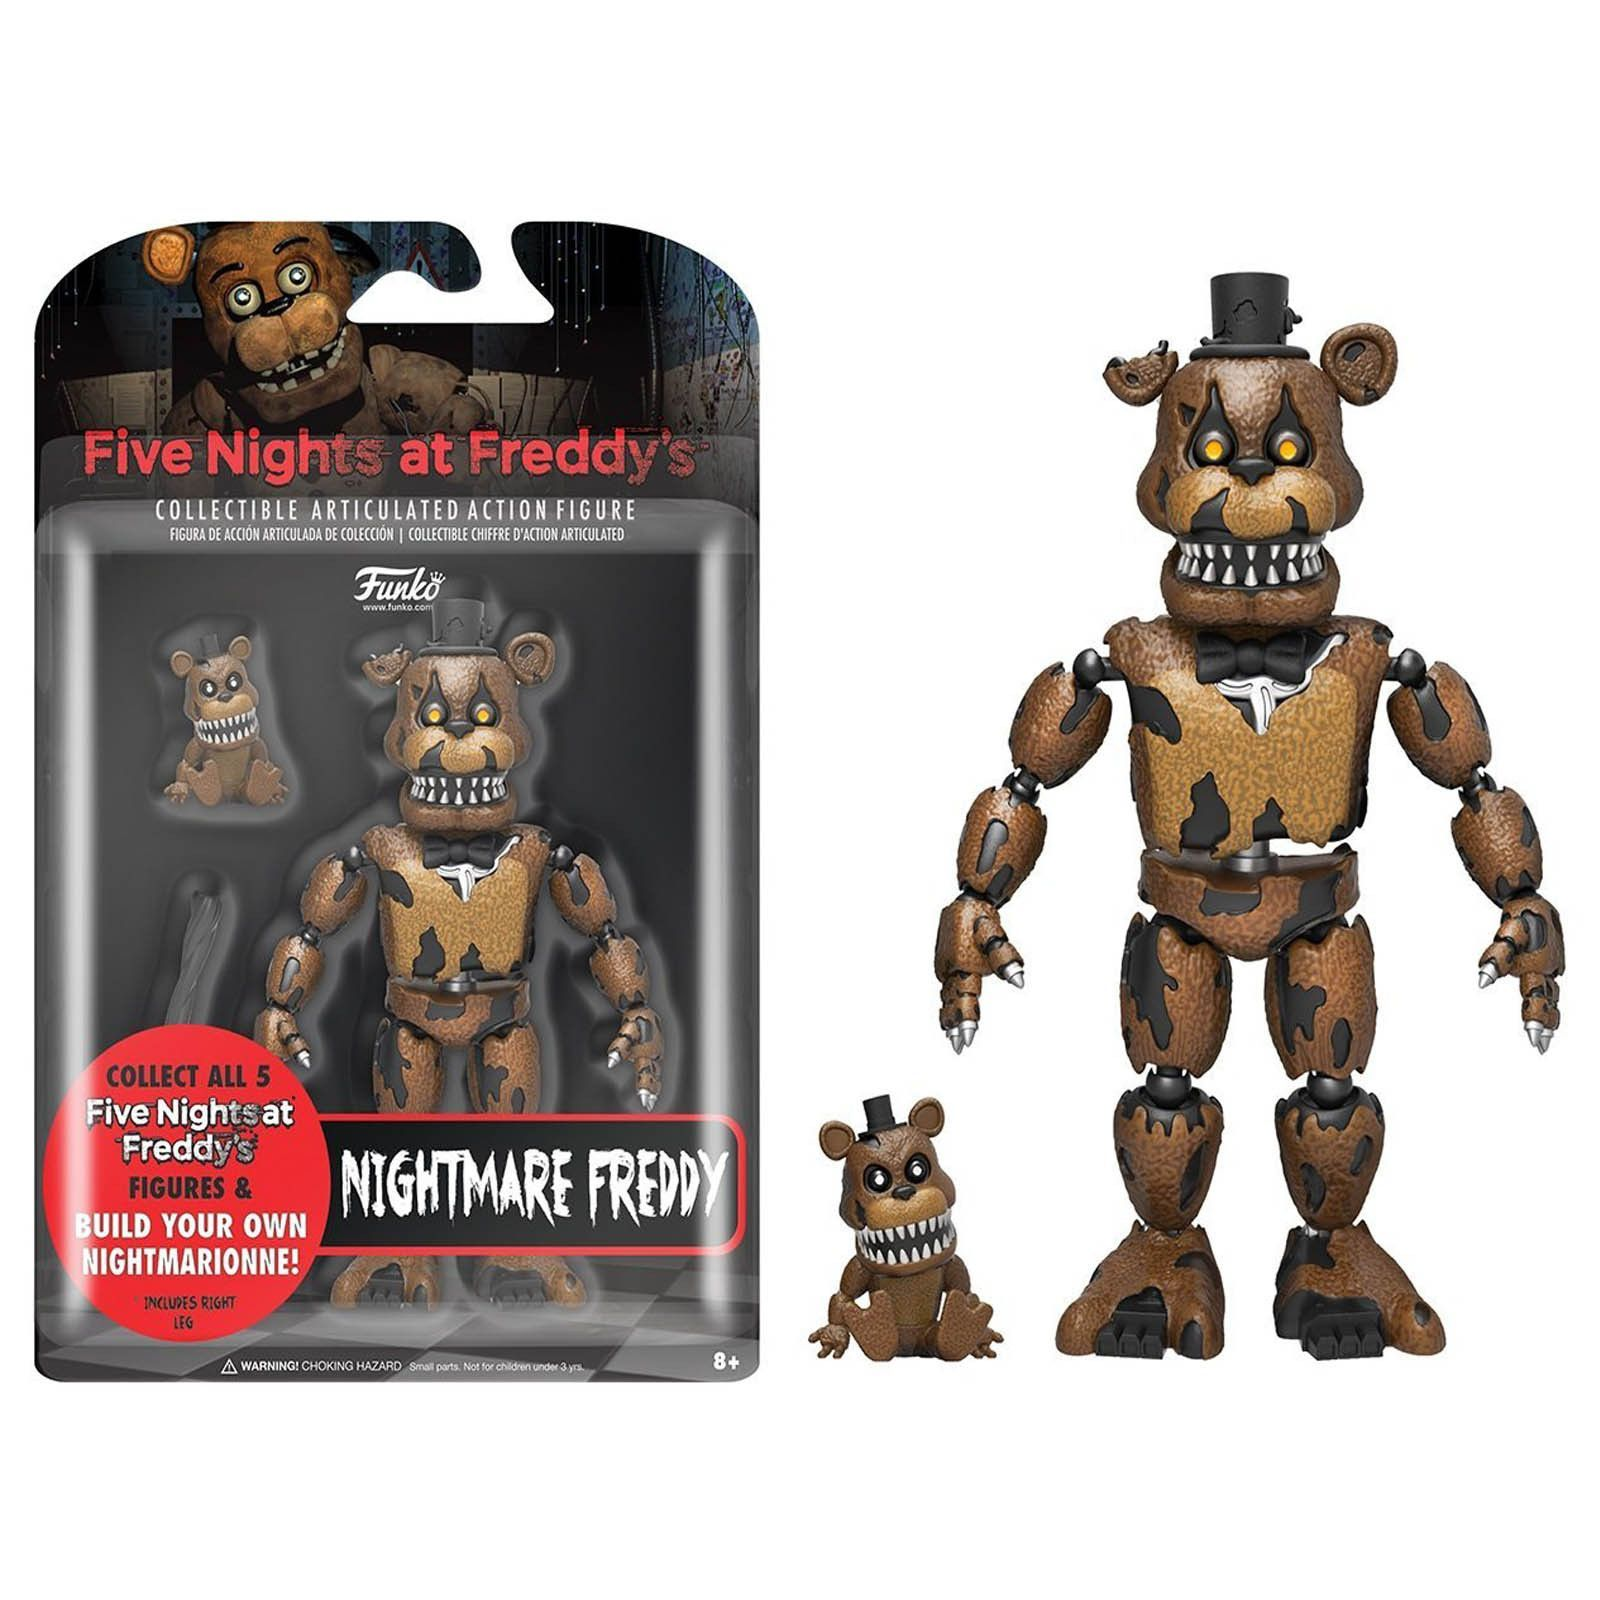 This Is The Funko Five Nights At Freddy's Nightmare Freddy